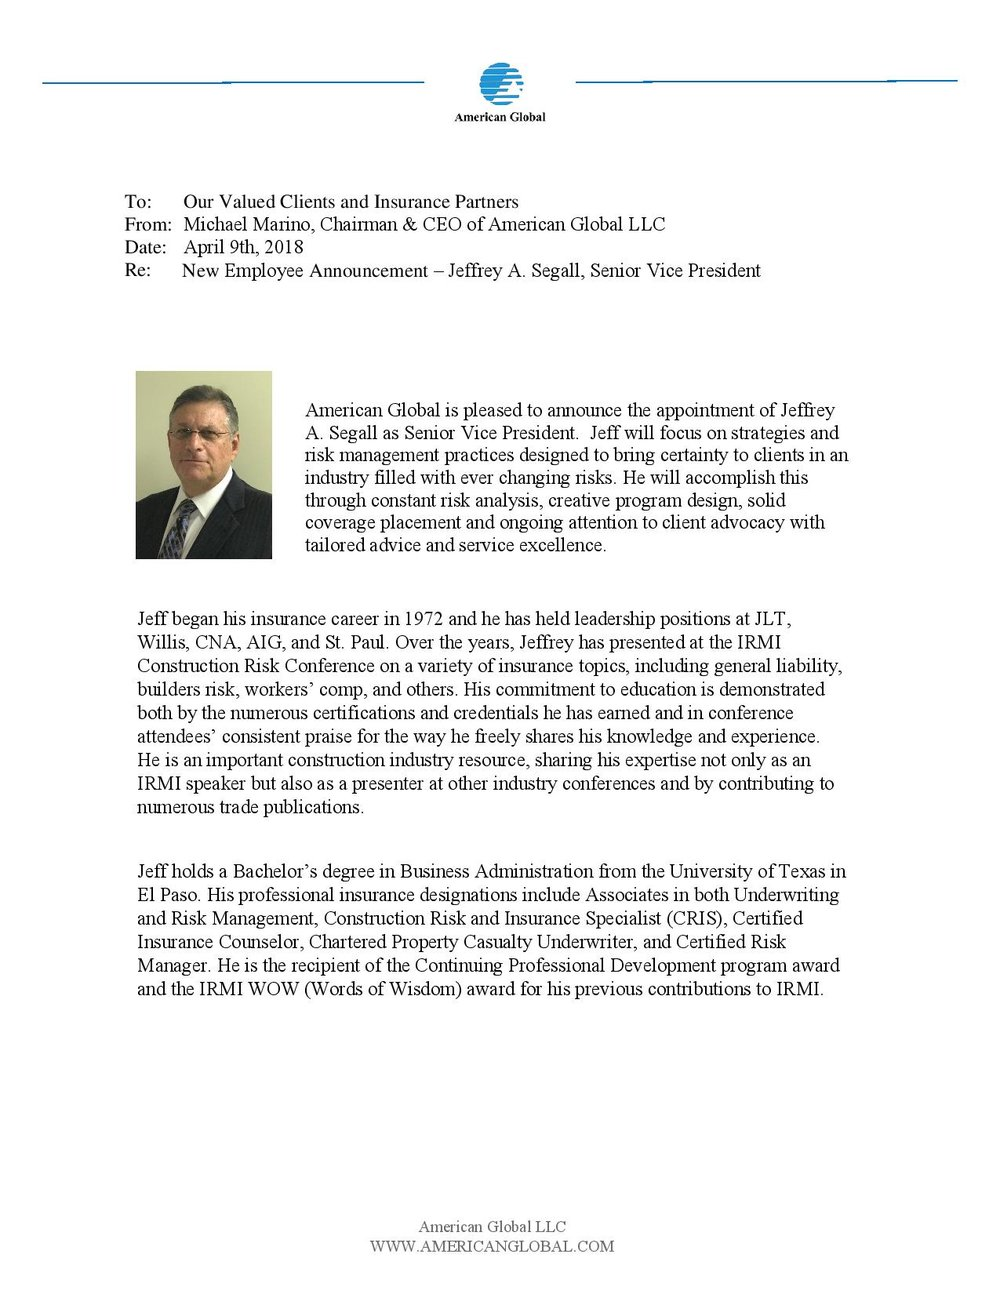 American Global New Employee Announcement -Jeffrey A. Segall-page-001.jpg